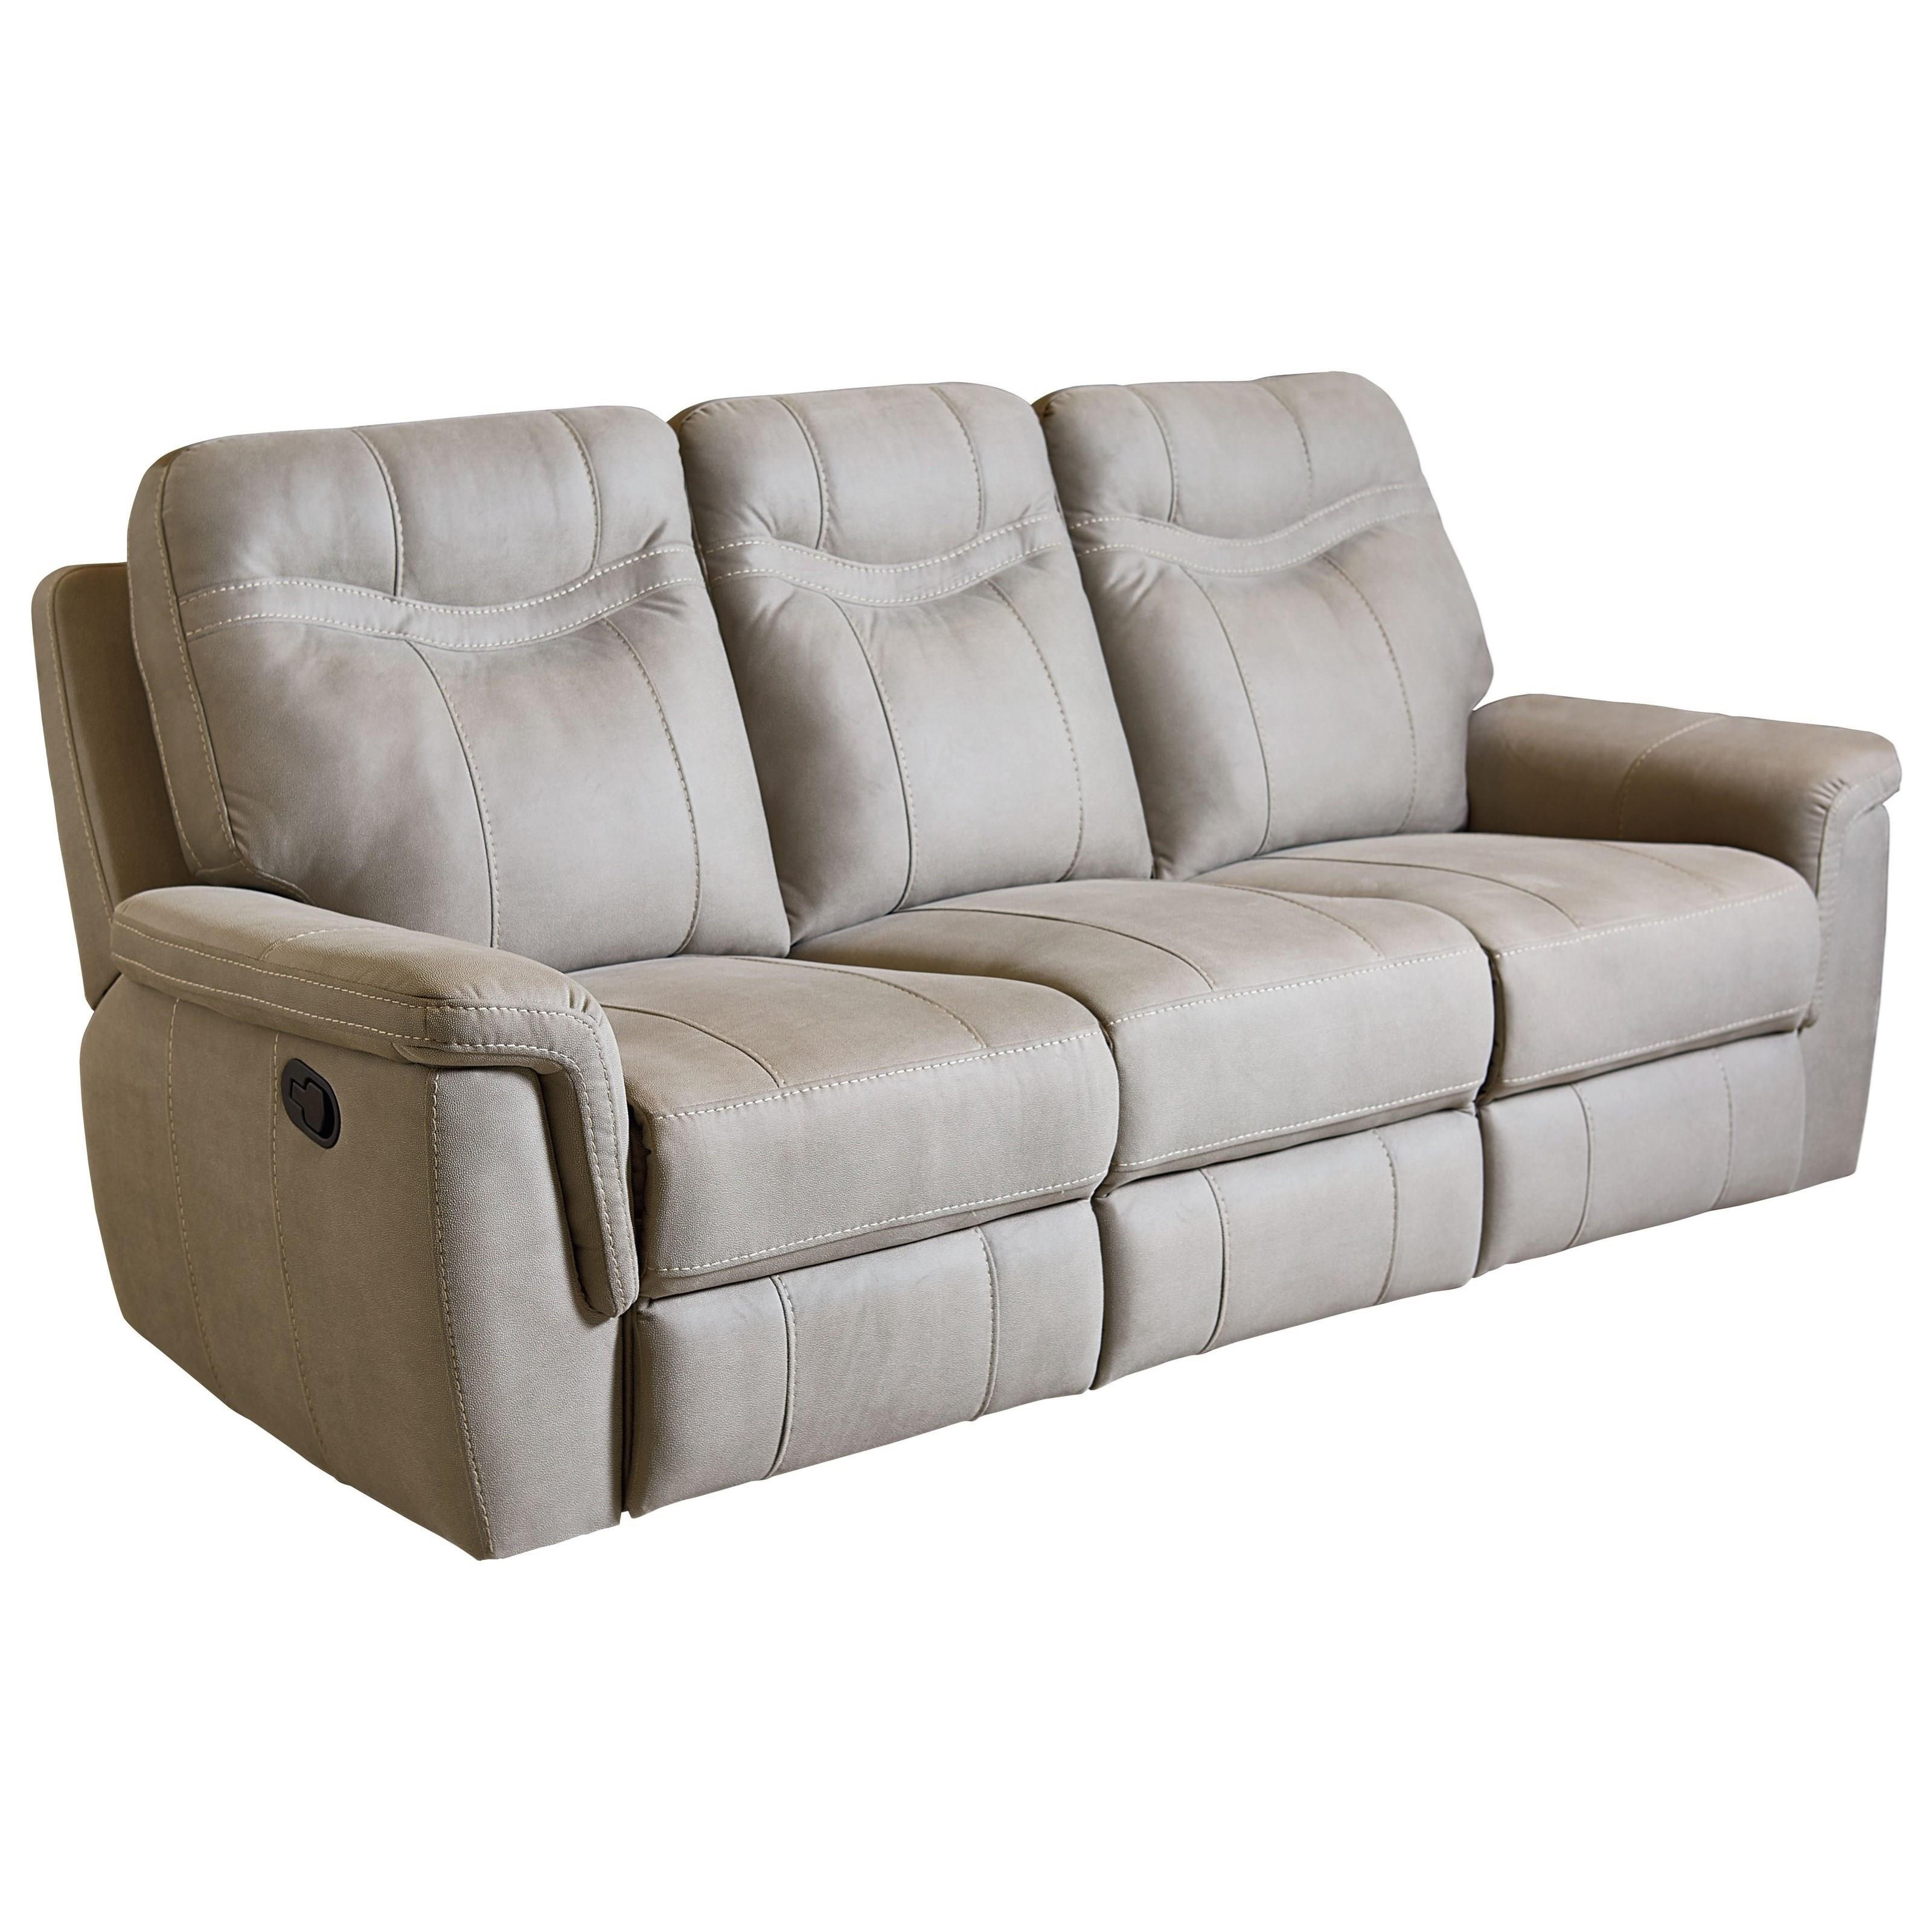 Standard Furniture Boardwalk Contemporary Stone Colored Reclining Sofa